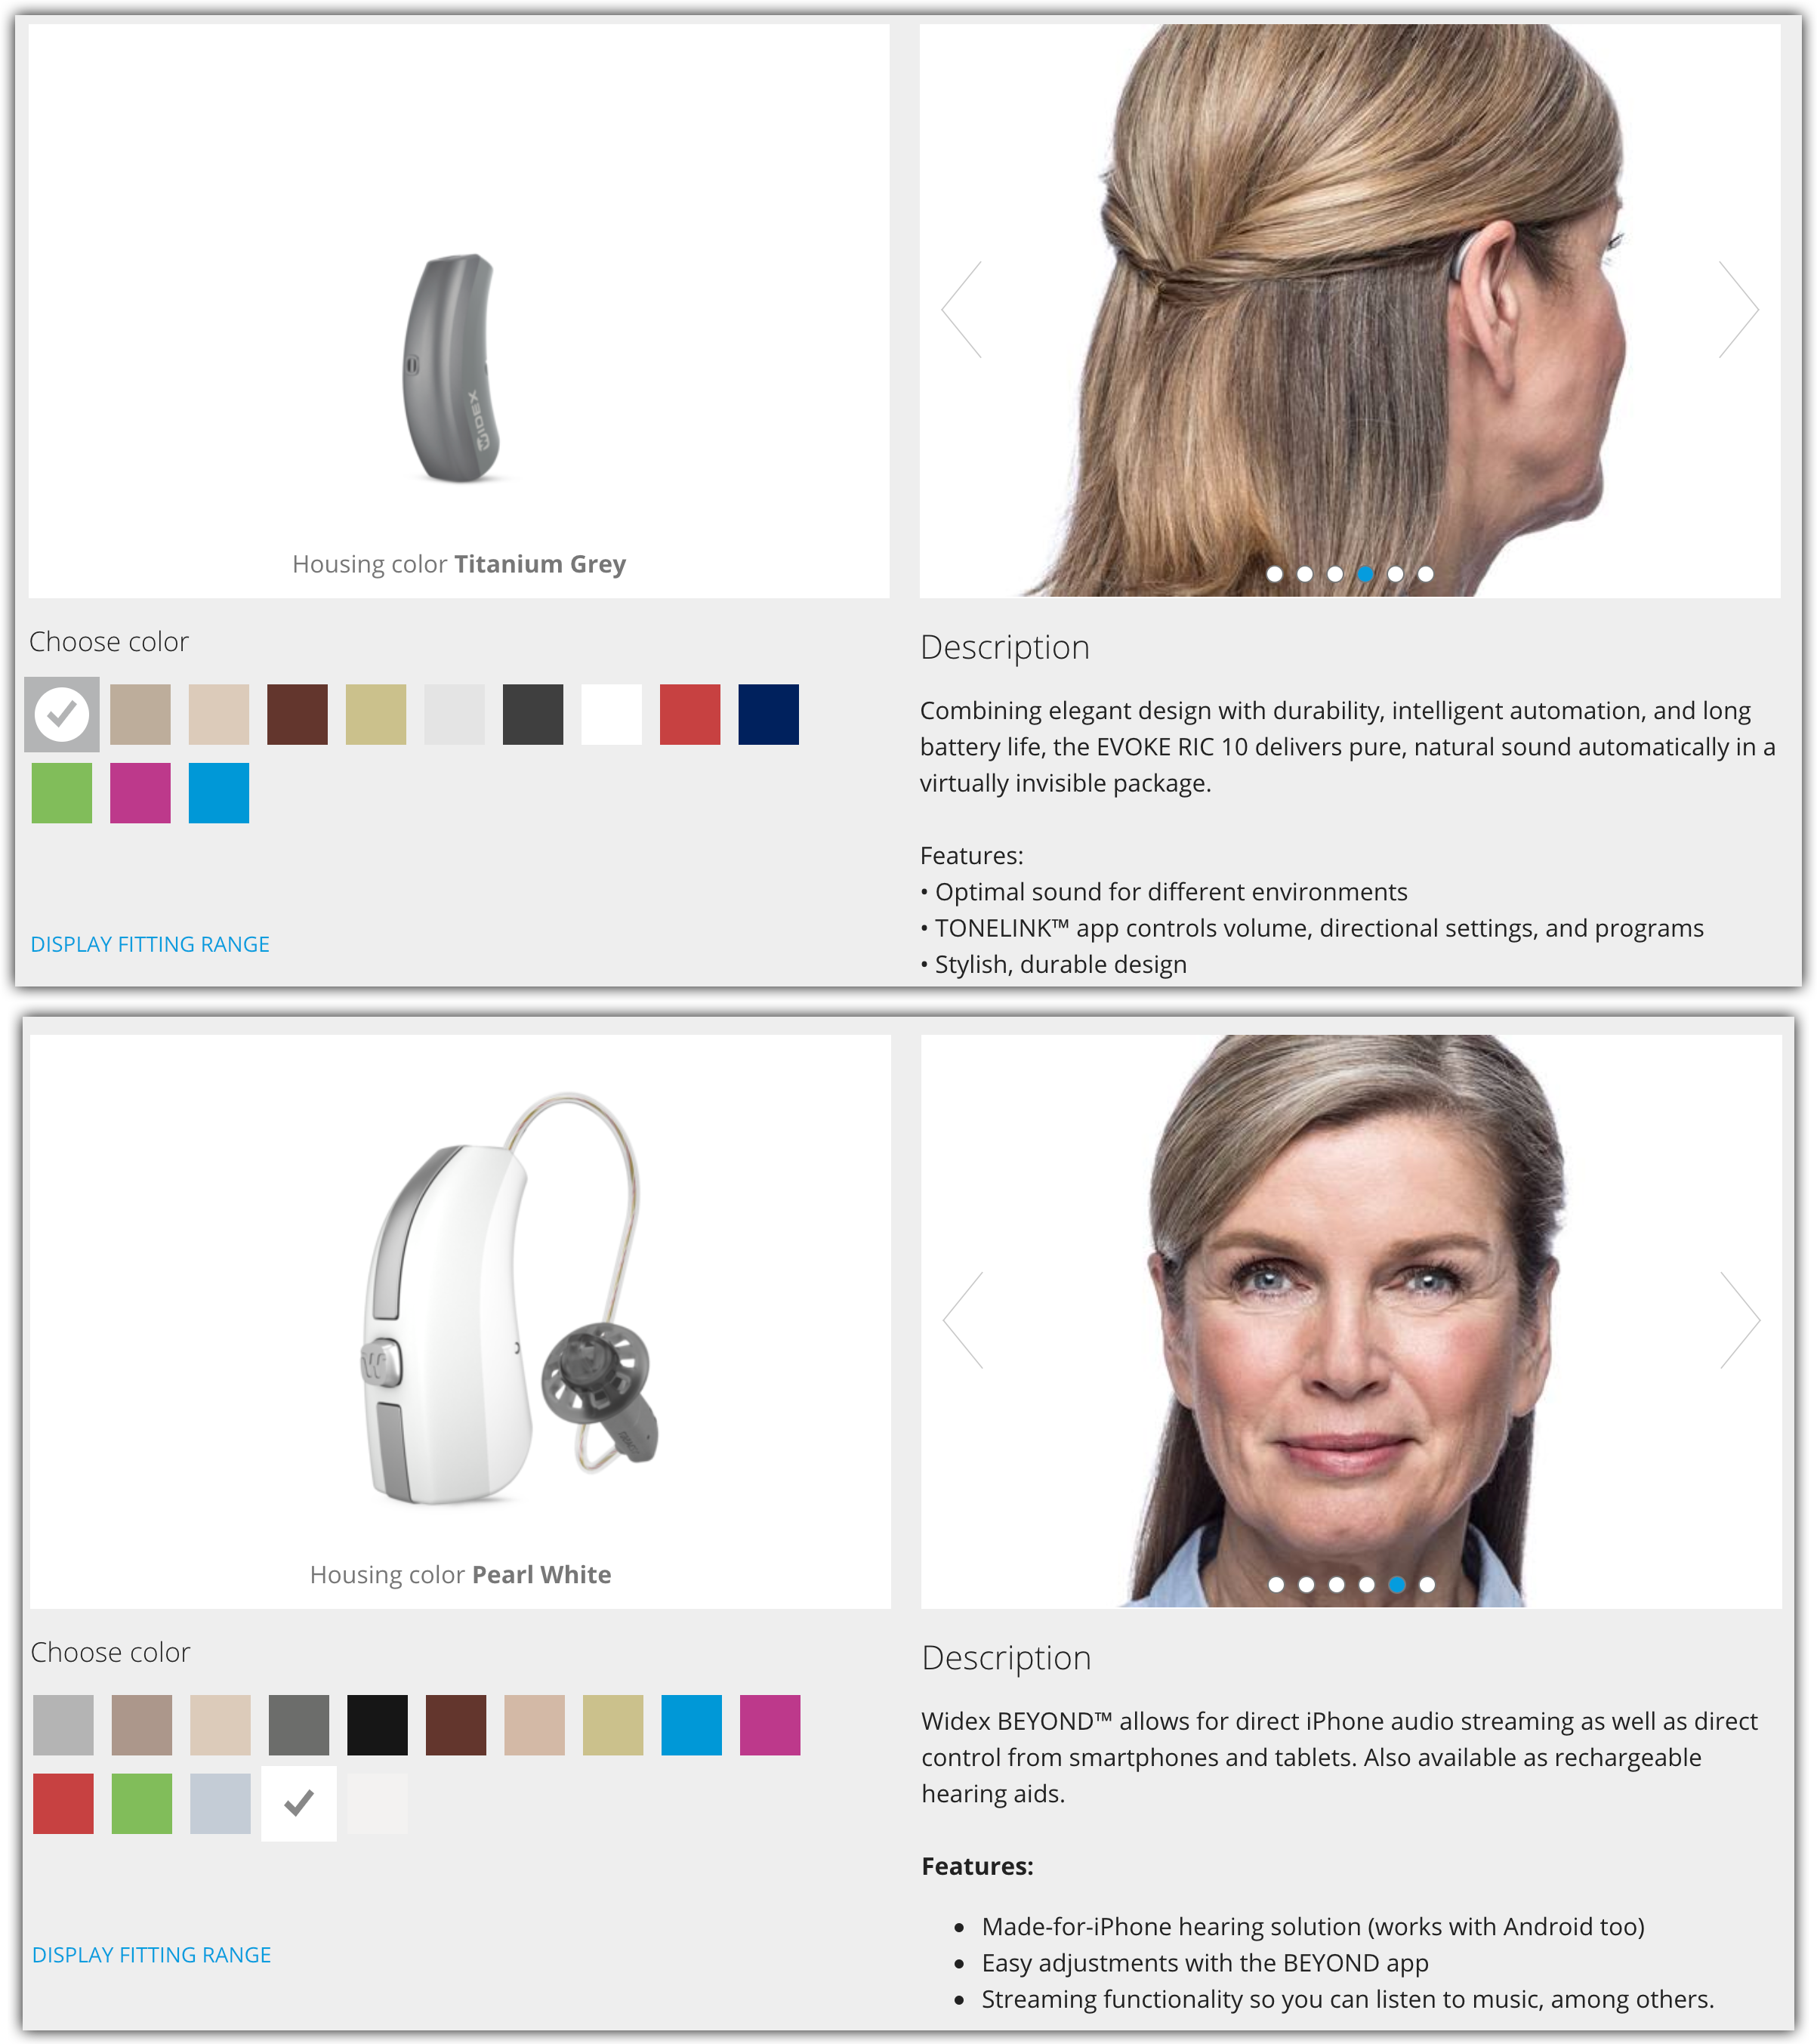 two versions of behind-the-ear hearing aids including Evoke and Beyond models. The Beyond model has iphone connectivity